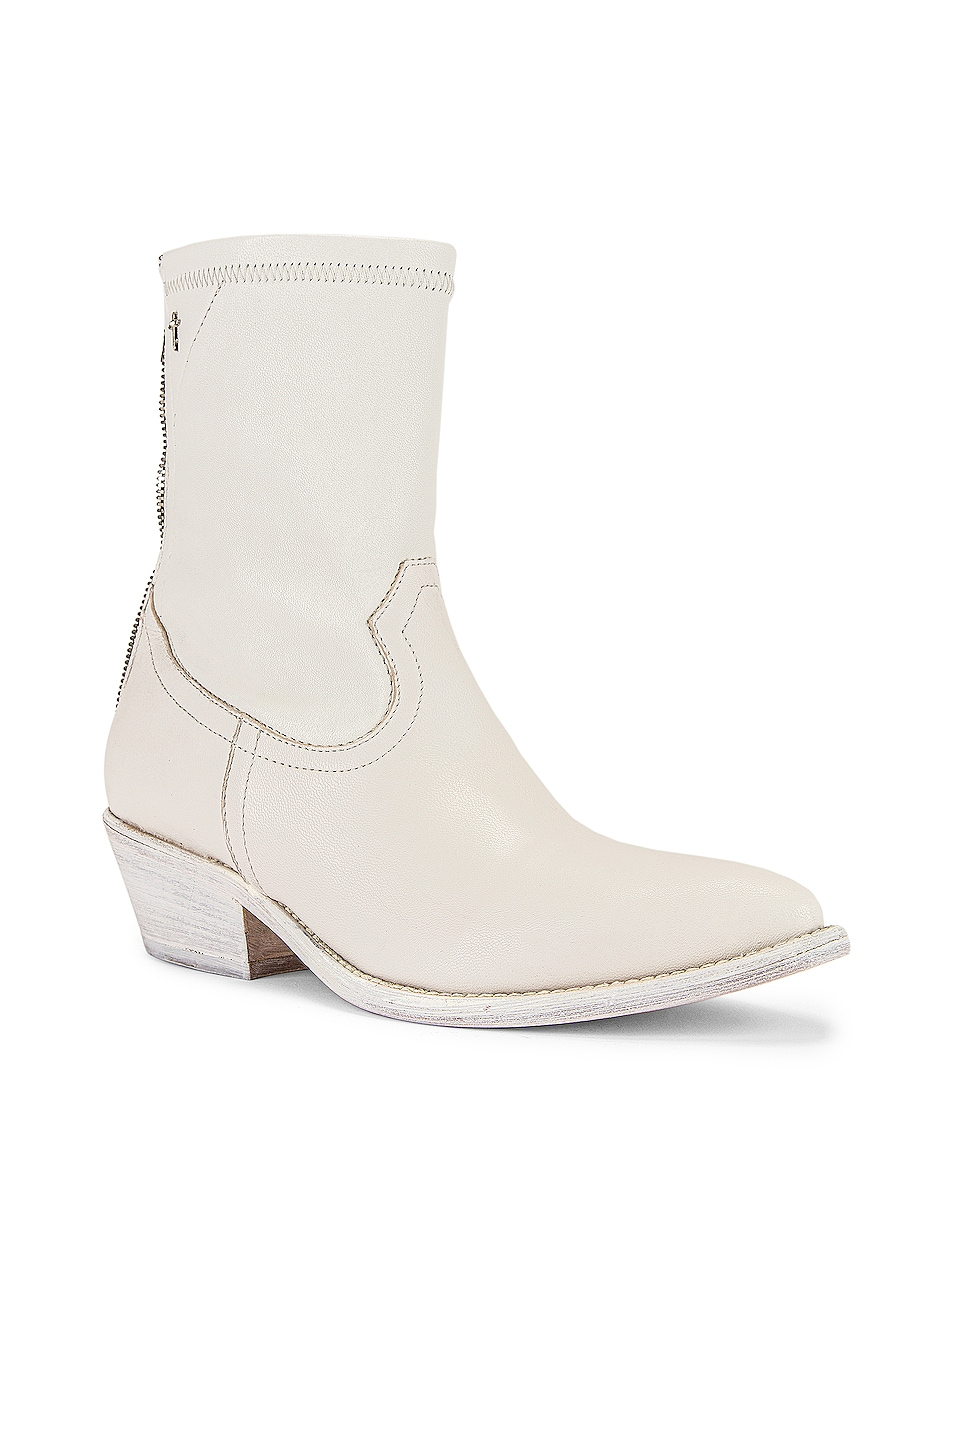 Image 2 of RtA Short Western Boot in White Leather